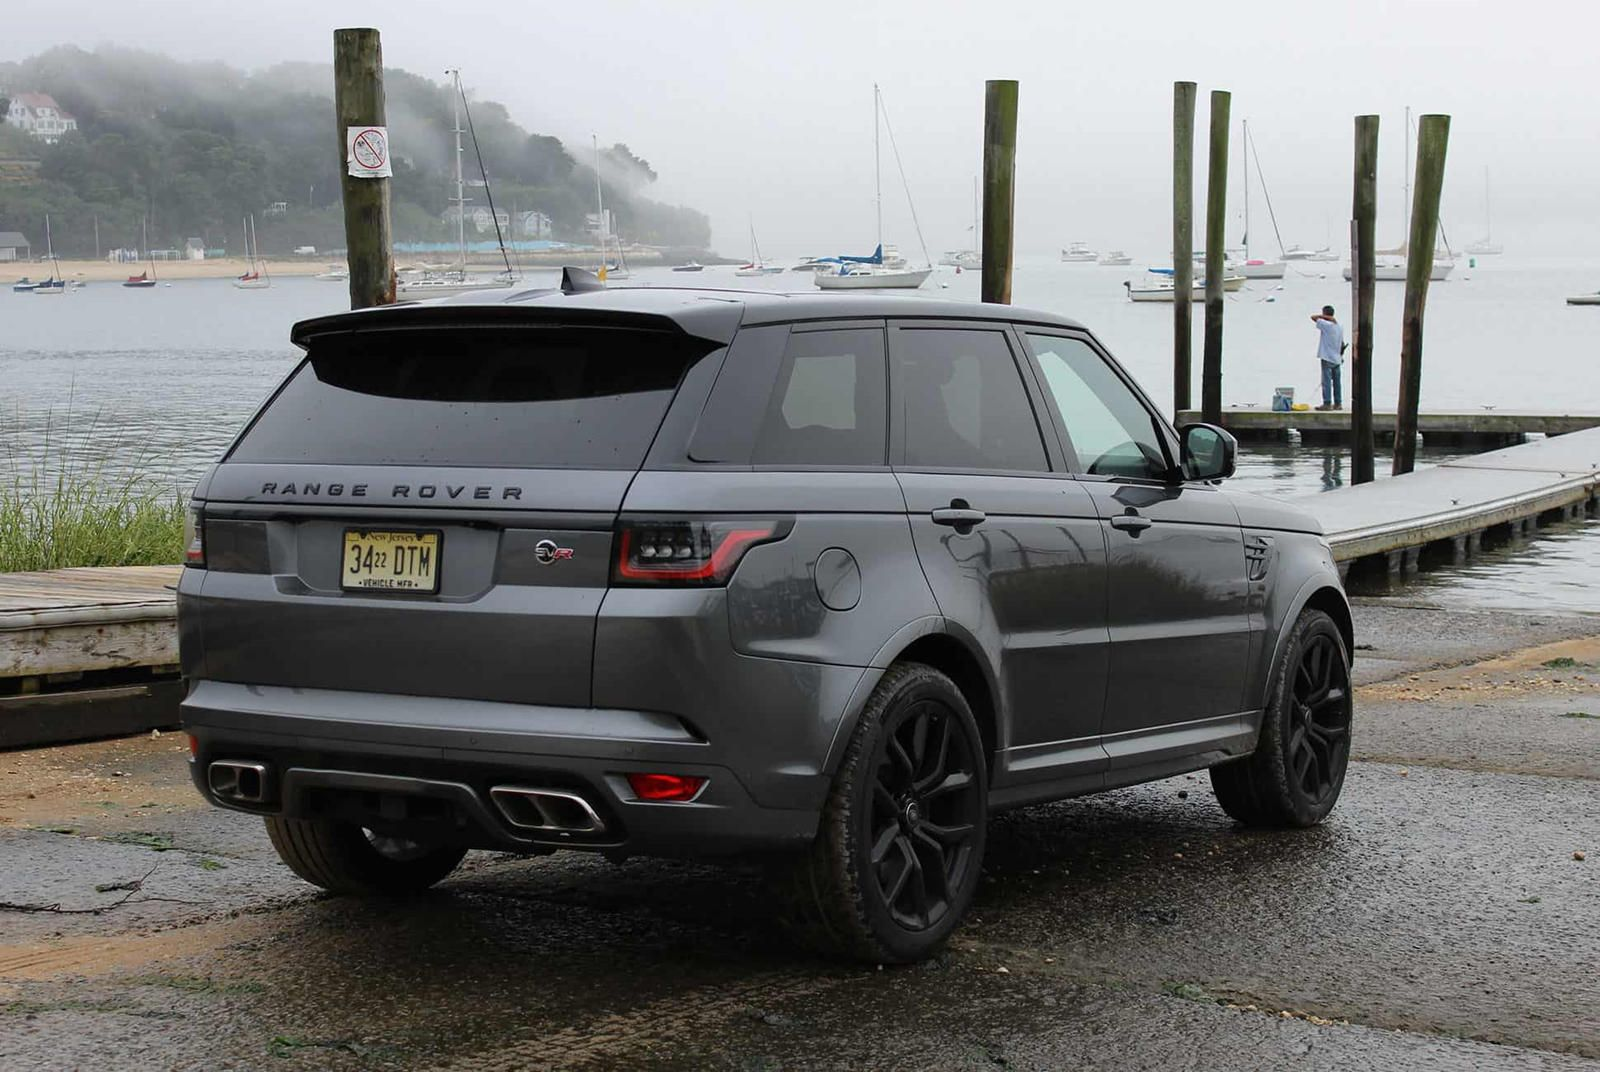 Pin by Britton McCorkle Jr on Cars Range rover svr